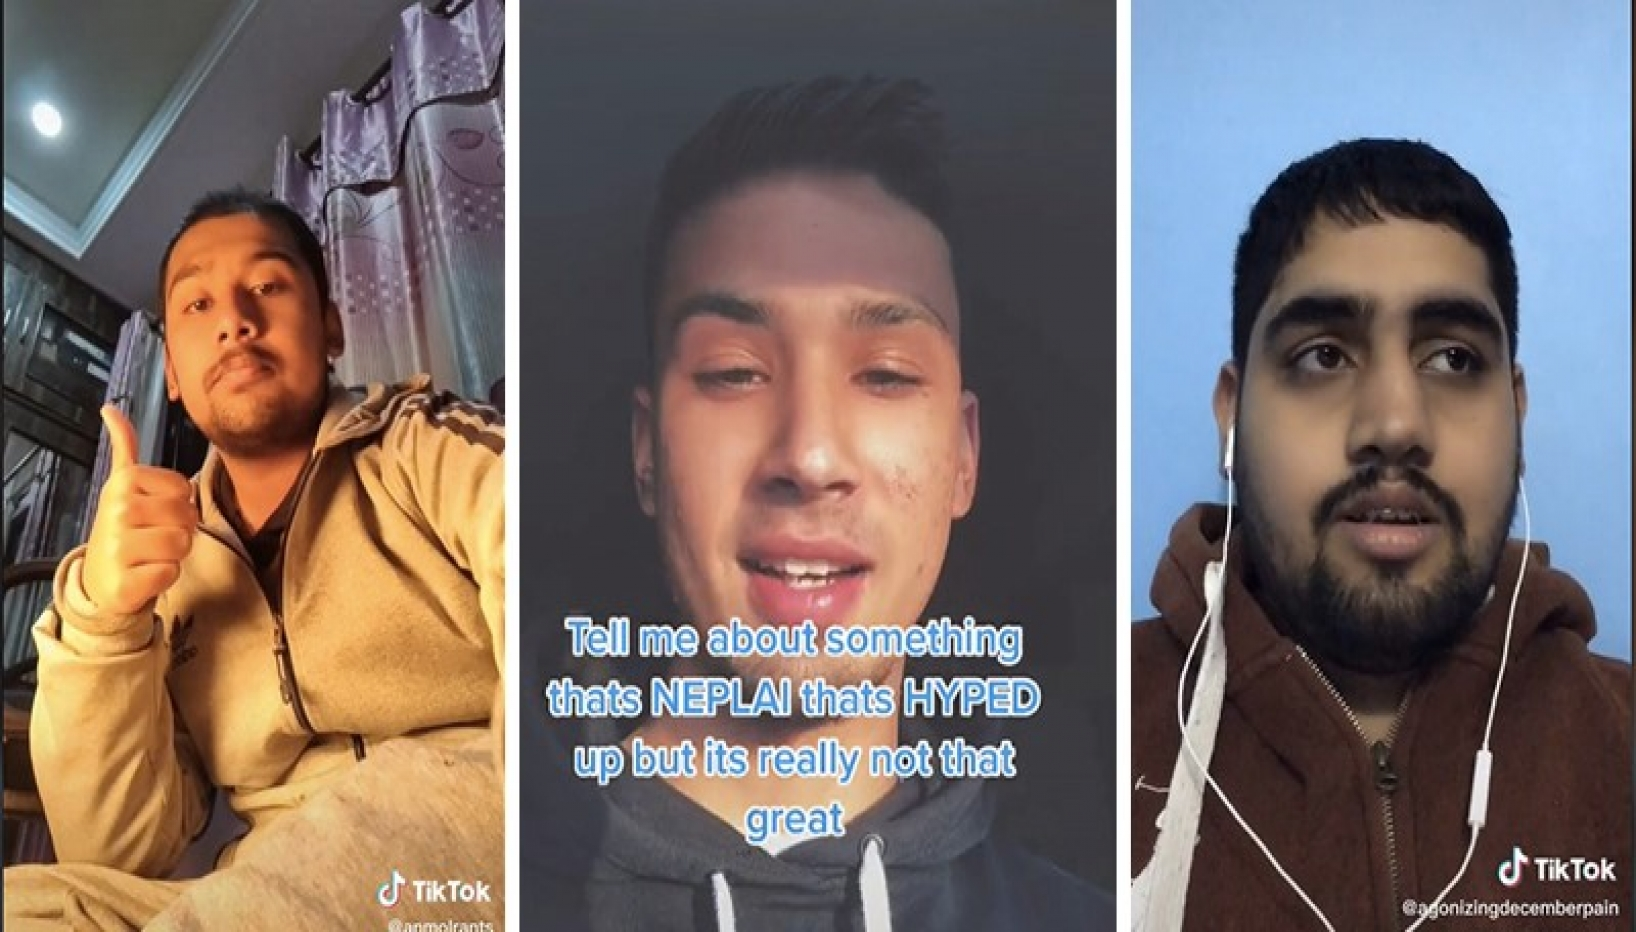 What's Overrated In Nepal? Nepali TikTokers Share What They Find Overhyped